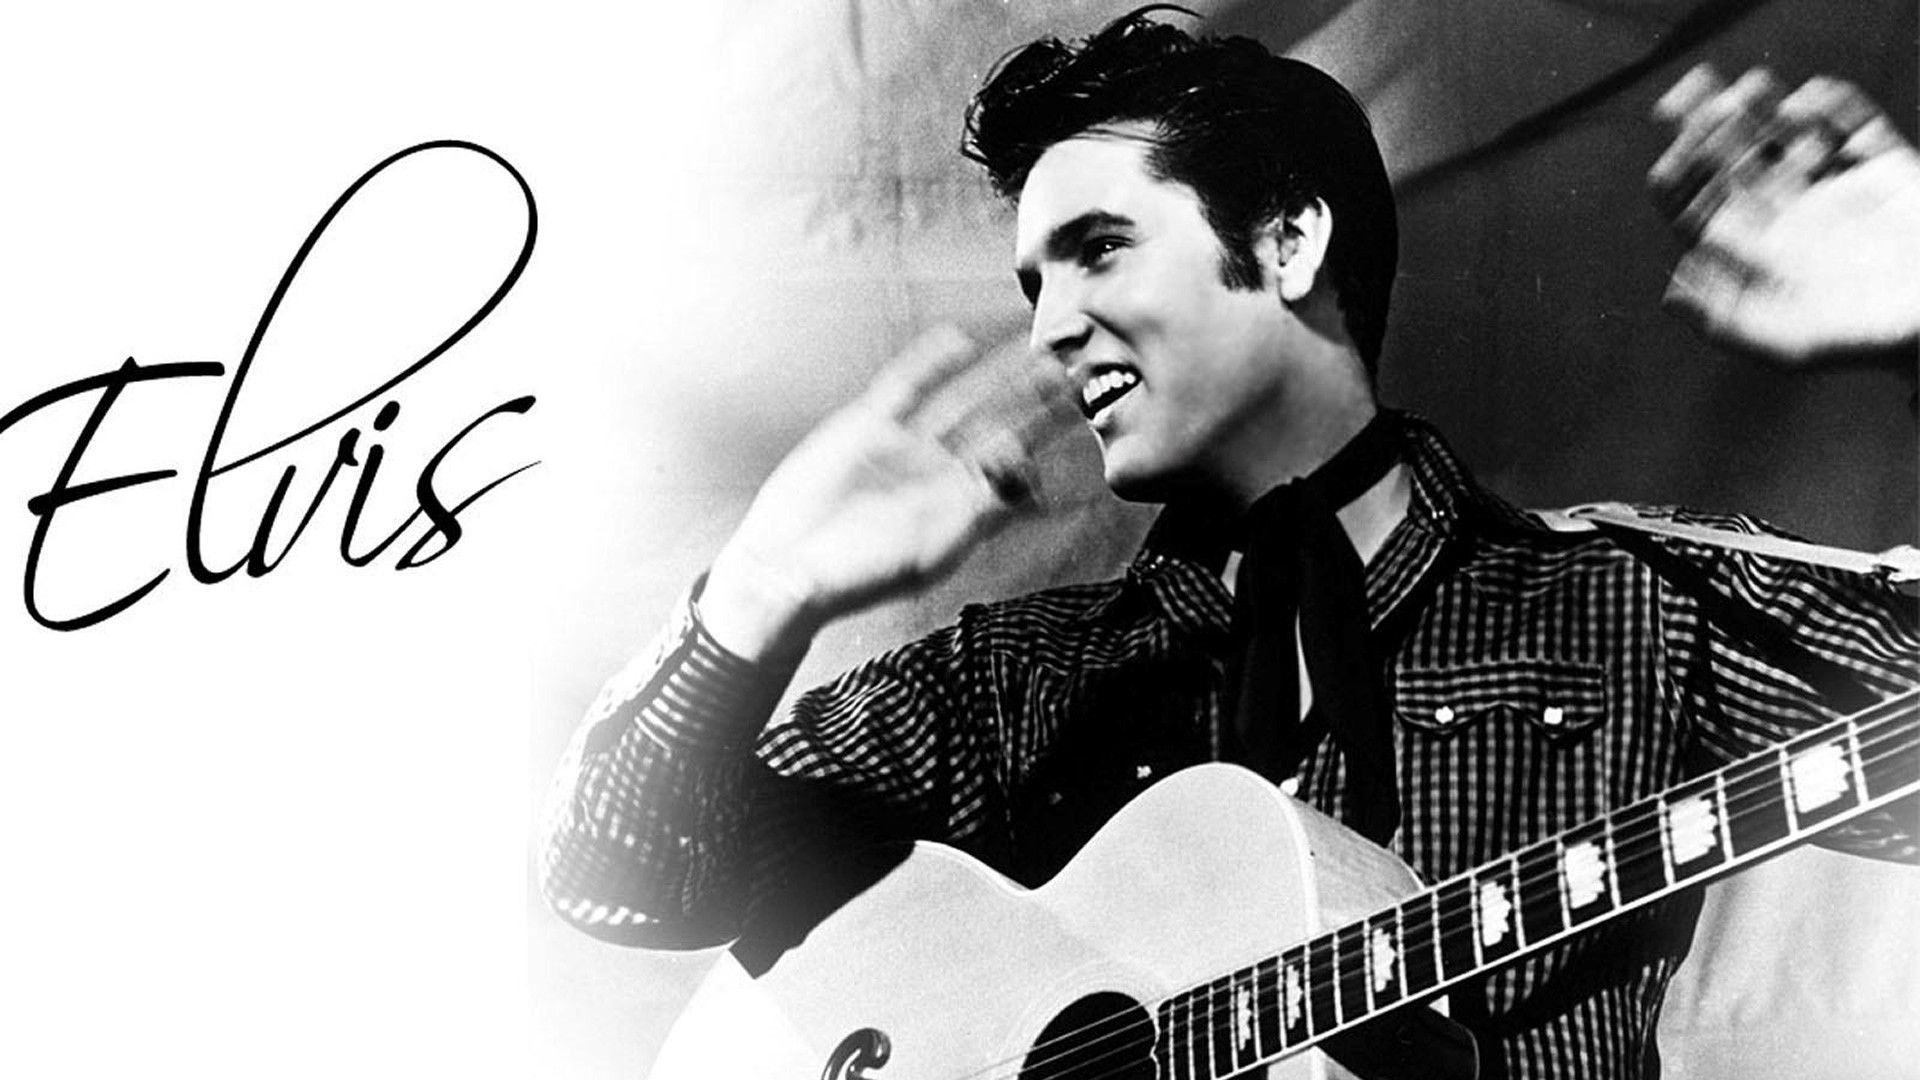 Elvis Presley Wallpaper Download Free Amazing Hd Wallpapers